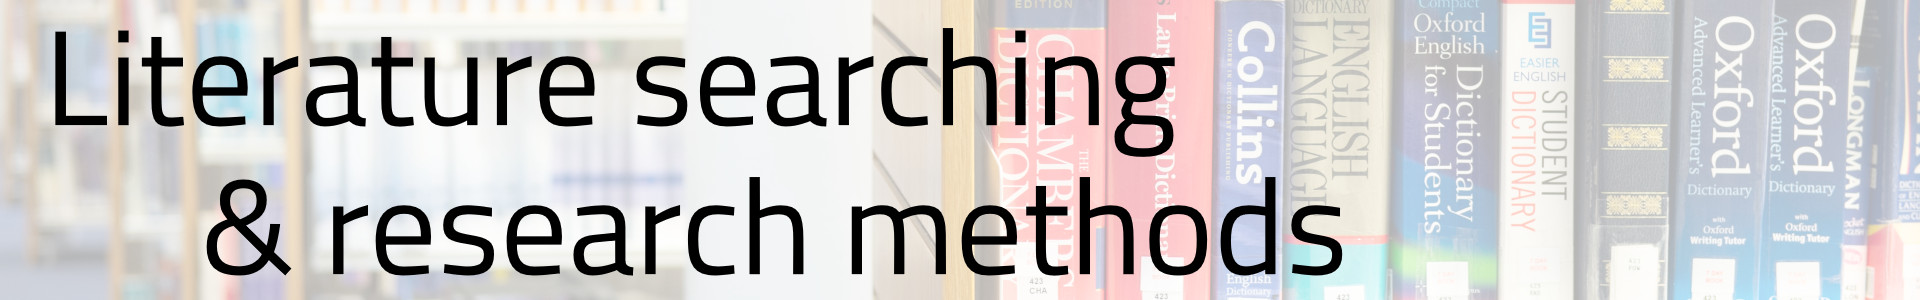 Literature searching & research methods